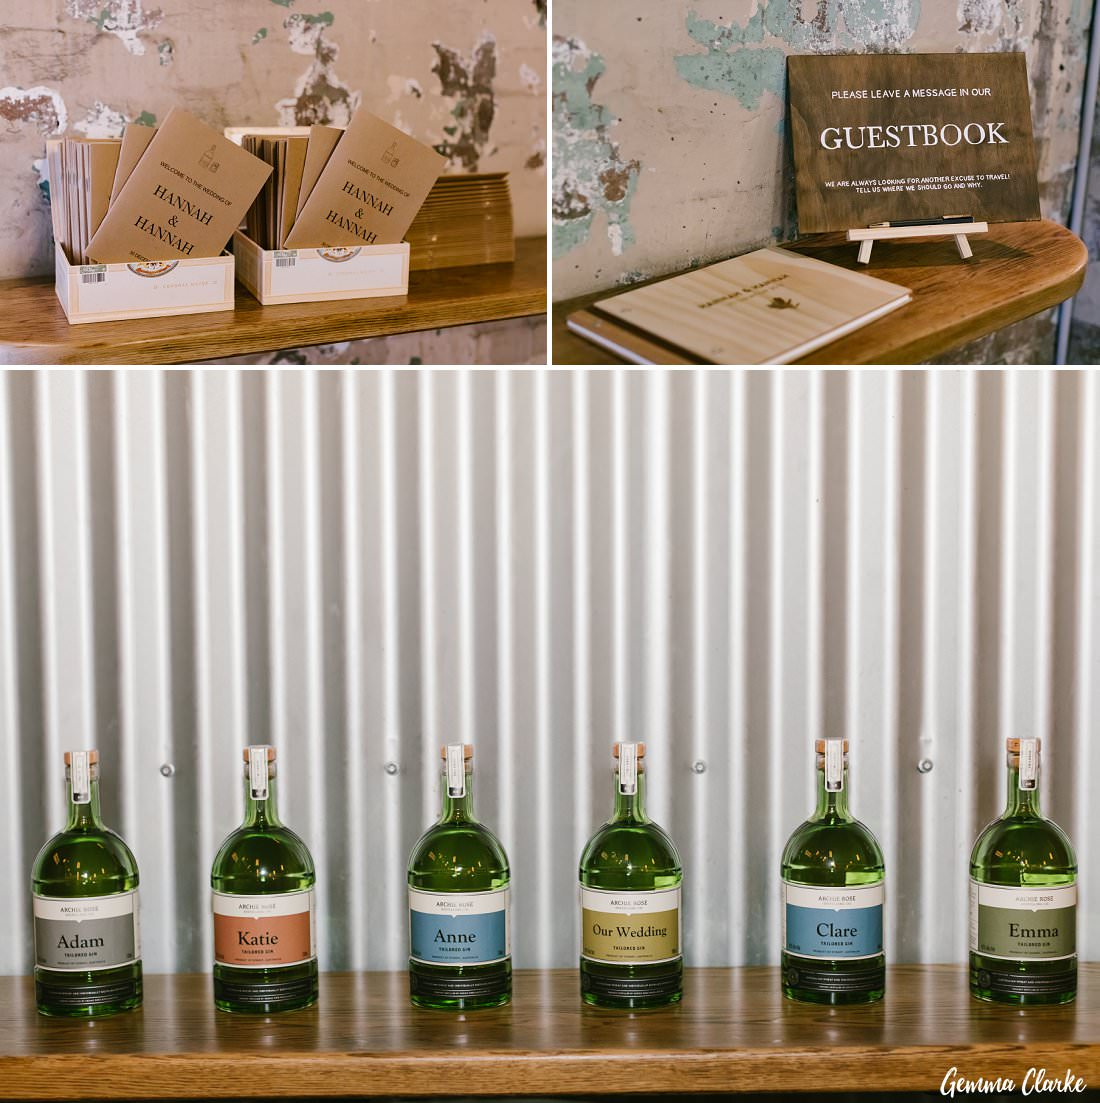 Customised Gin bottles by Archie Rose Distillery for the bridal party at this wedding